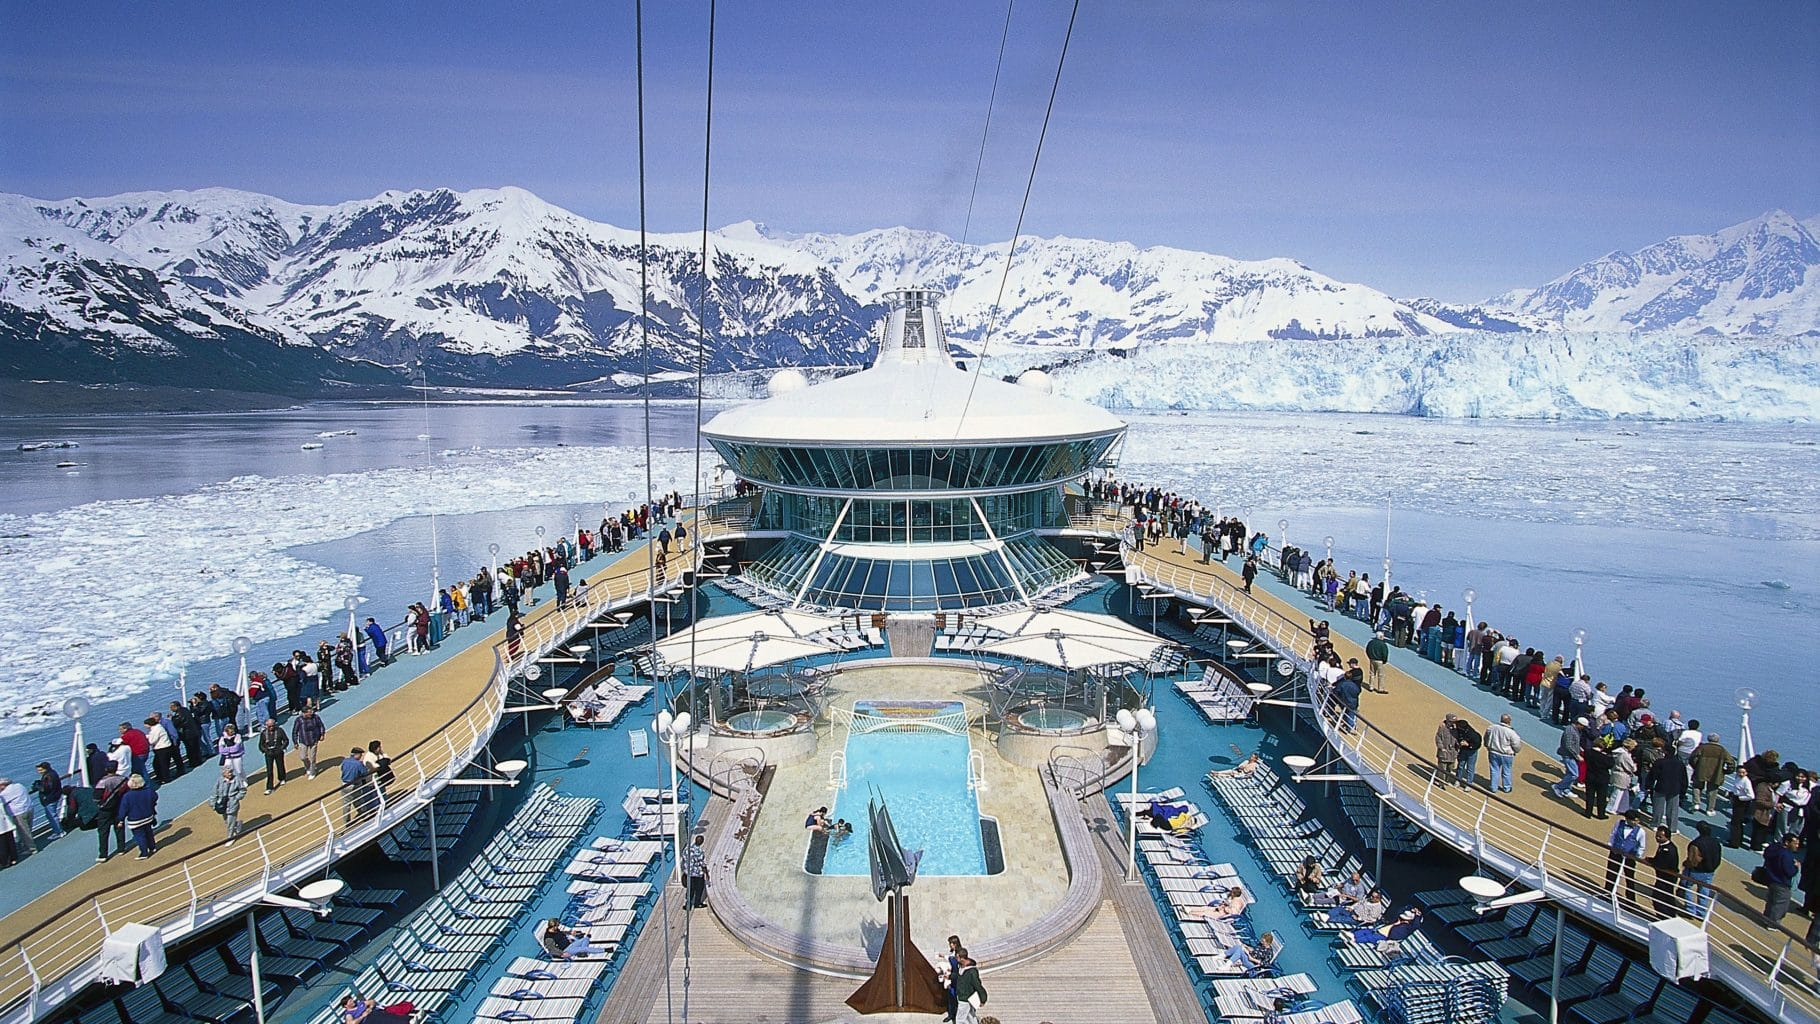 Best Time to Go on an Alaskan Cruise